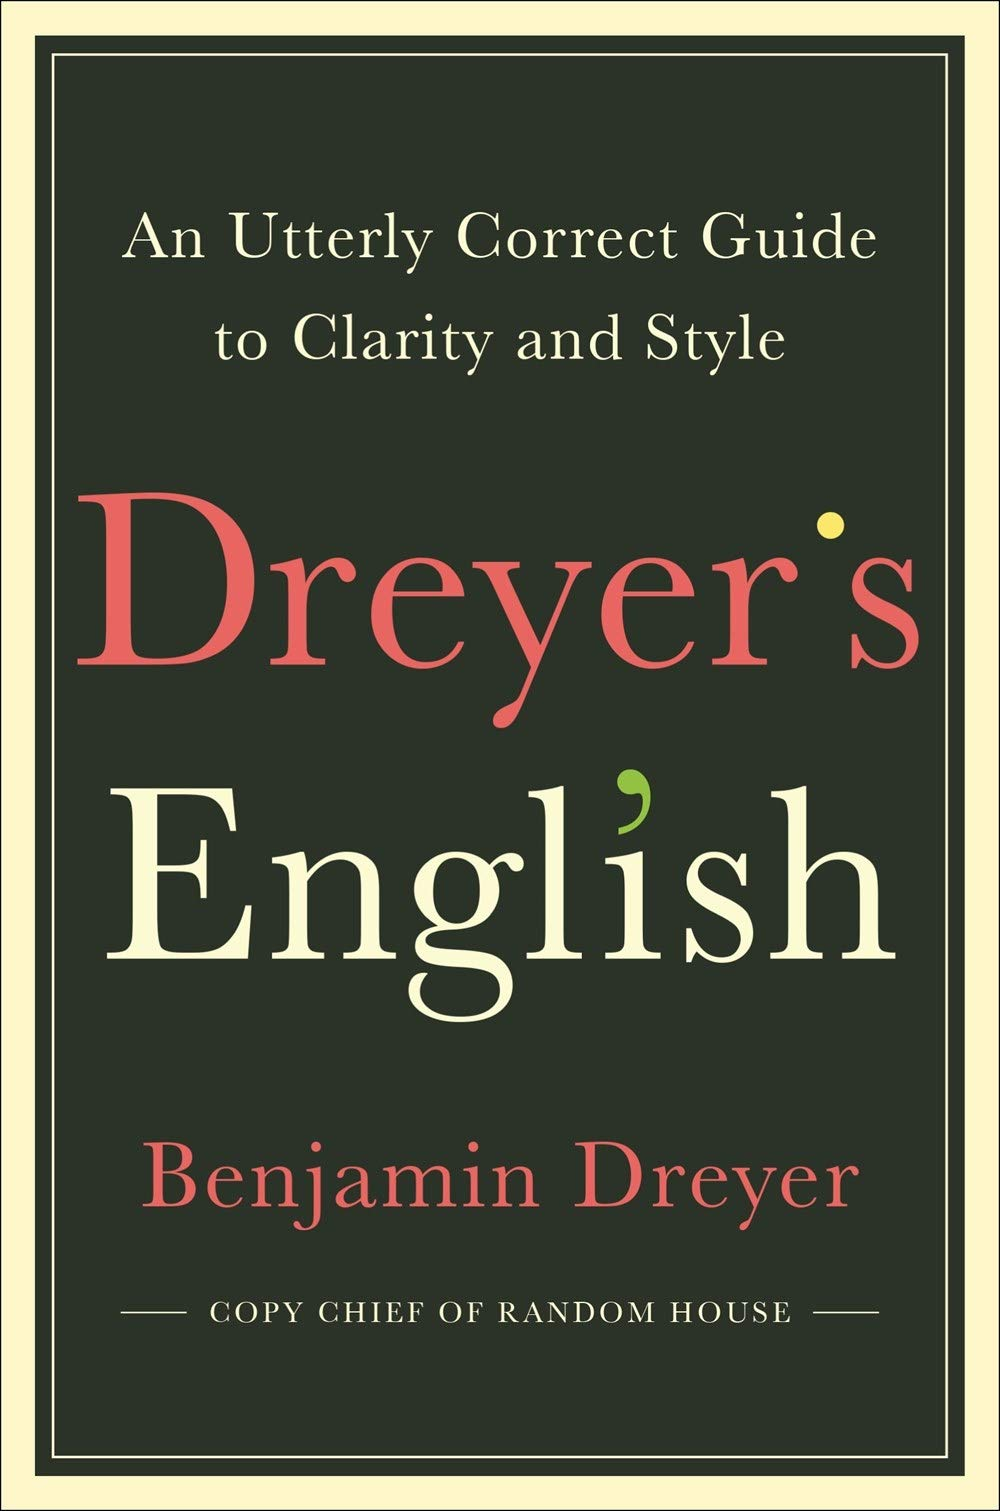 Check Out Dreyers EnglishProducts On Amazon!